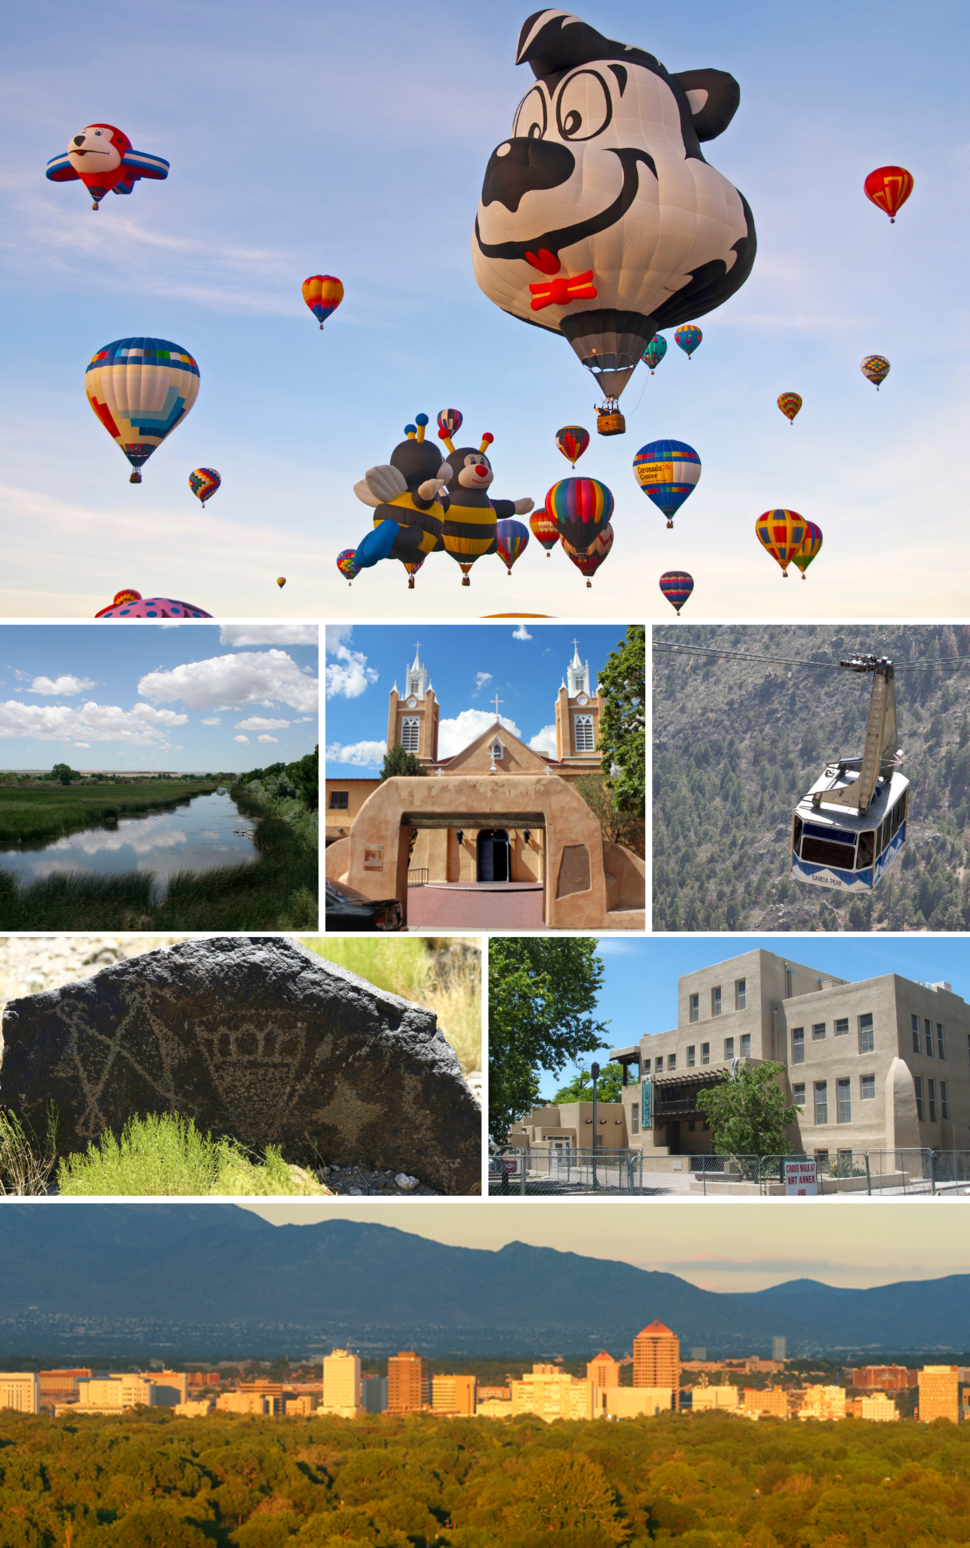 From top, left to right: International Balloon Fiesta; Rio Grande Wetlands; San Felipe de Neri Church; Sandia Peak Tramway; Petroglyph National Monument; University of New Mexico; Downtown